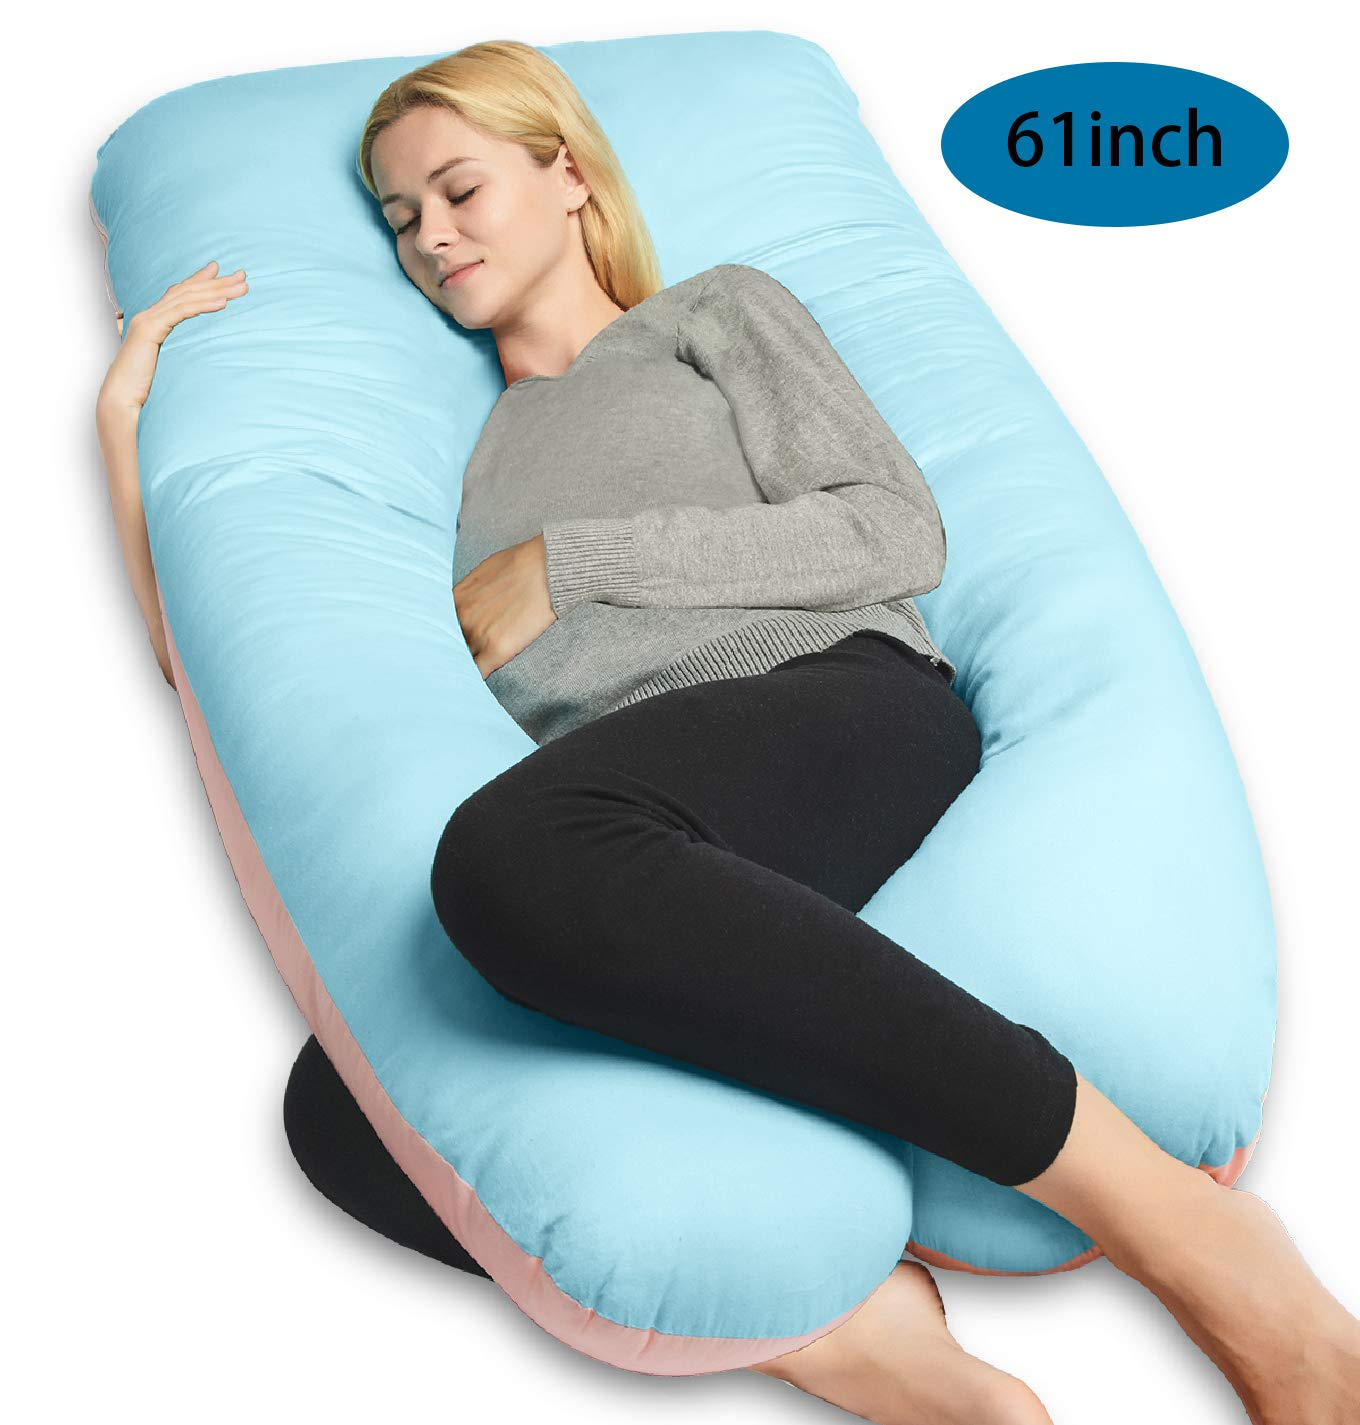 QUEEN ROSE U-Shape Pregnancy Pillow,Full Body Pillow for Back Pain with Cooling Cotton Cover